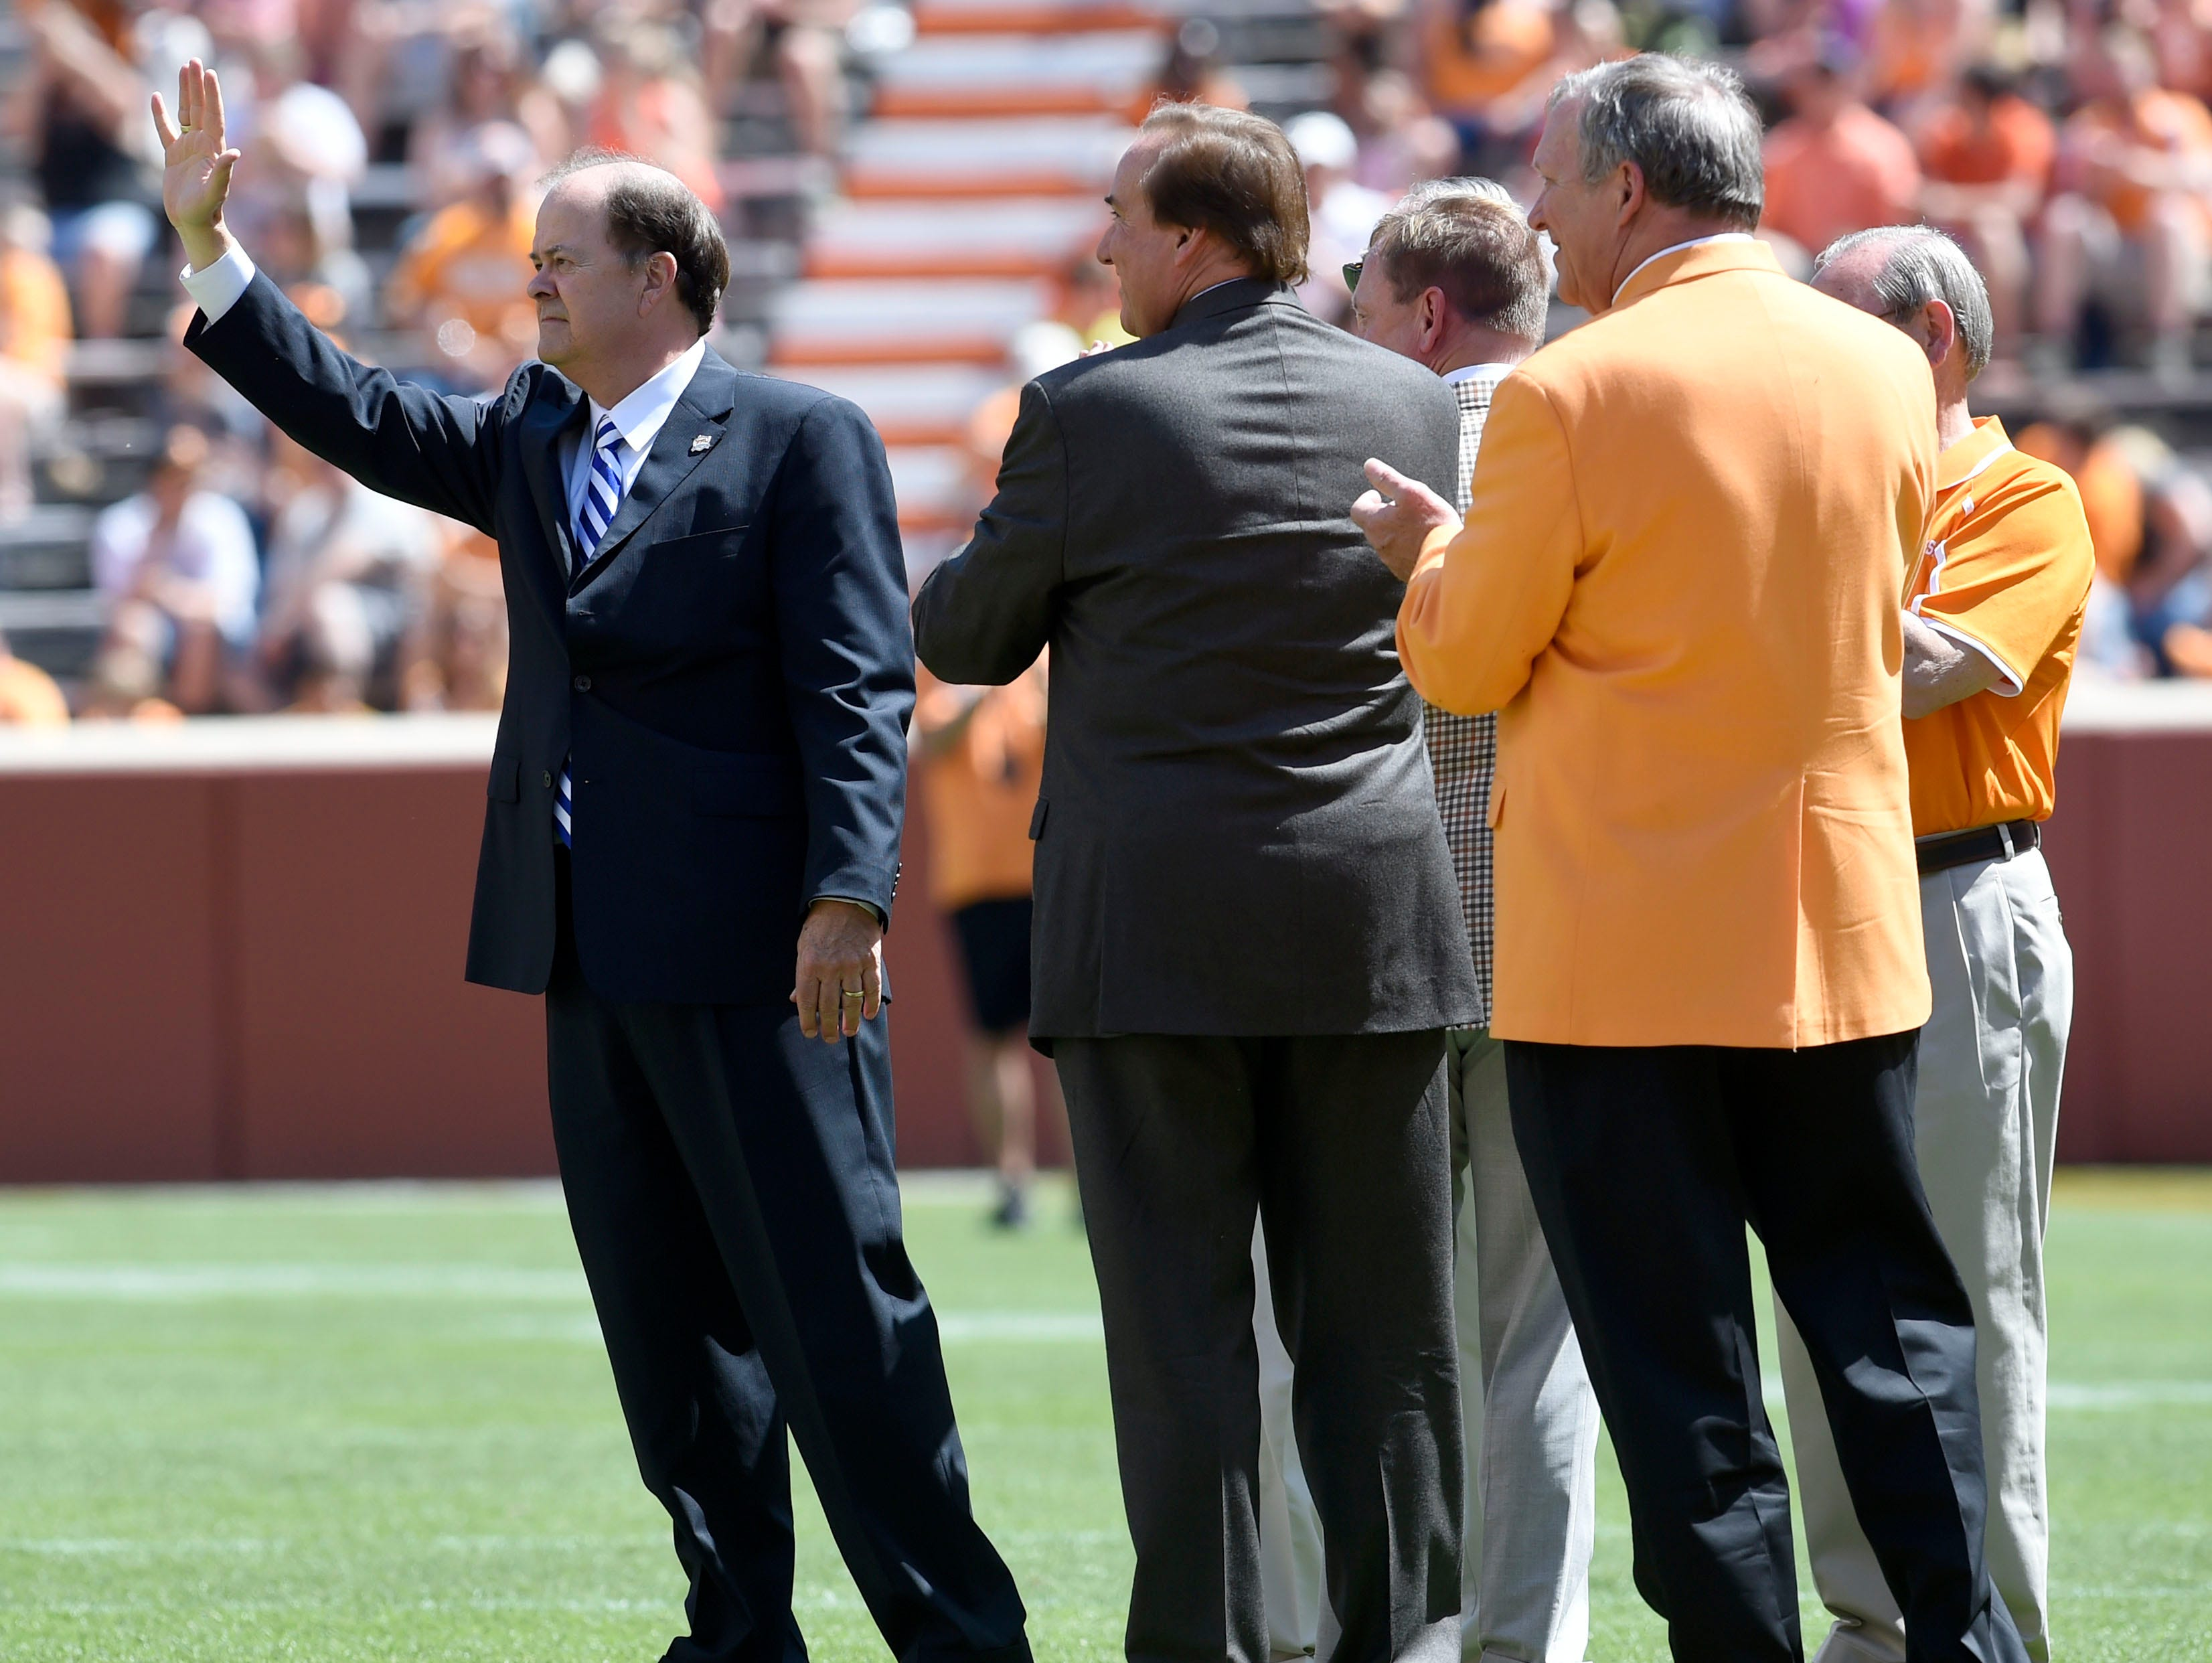 Duke head coach David Cutcliffe is acknowledged after receiving the Neyland Award for coaching during the Orange and White spring game at Neyland Stadium, Saturday, April 12, 2014.